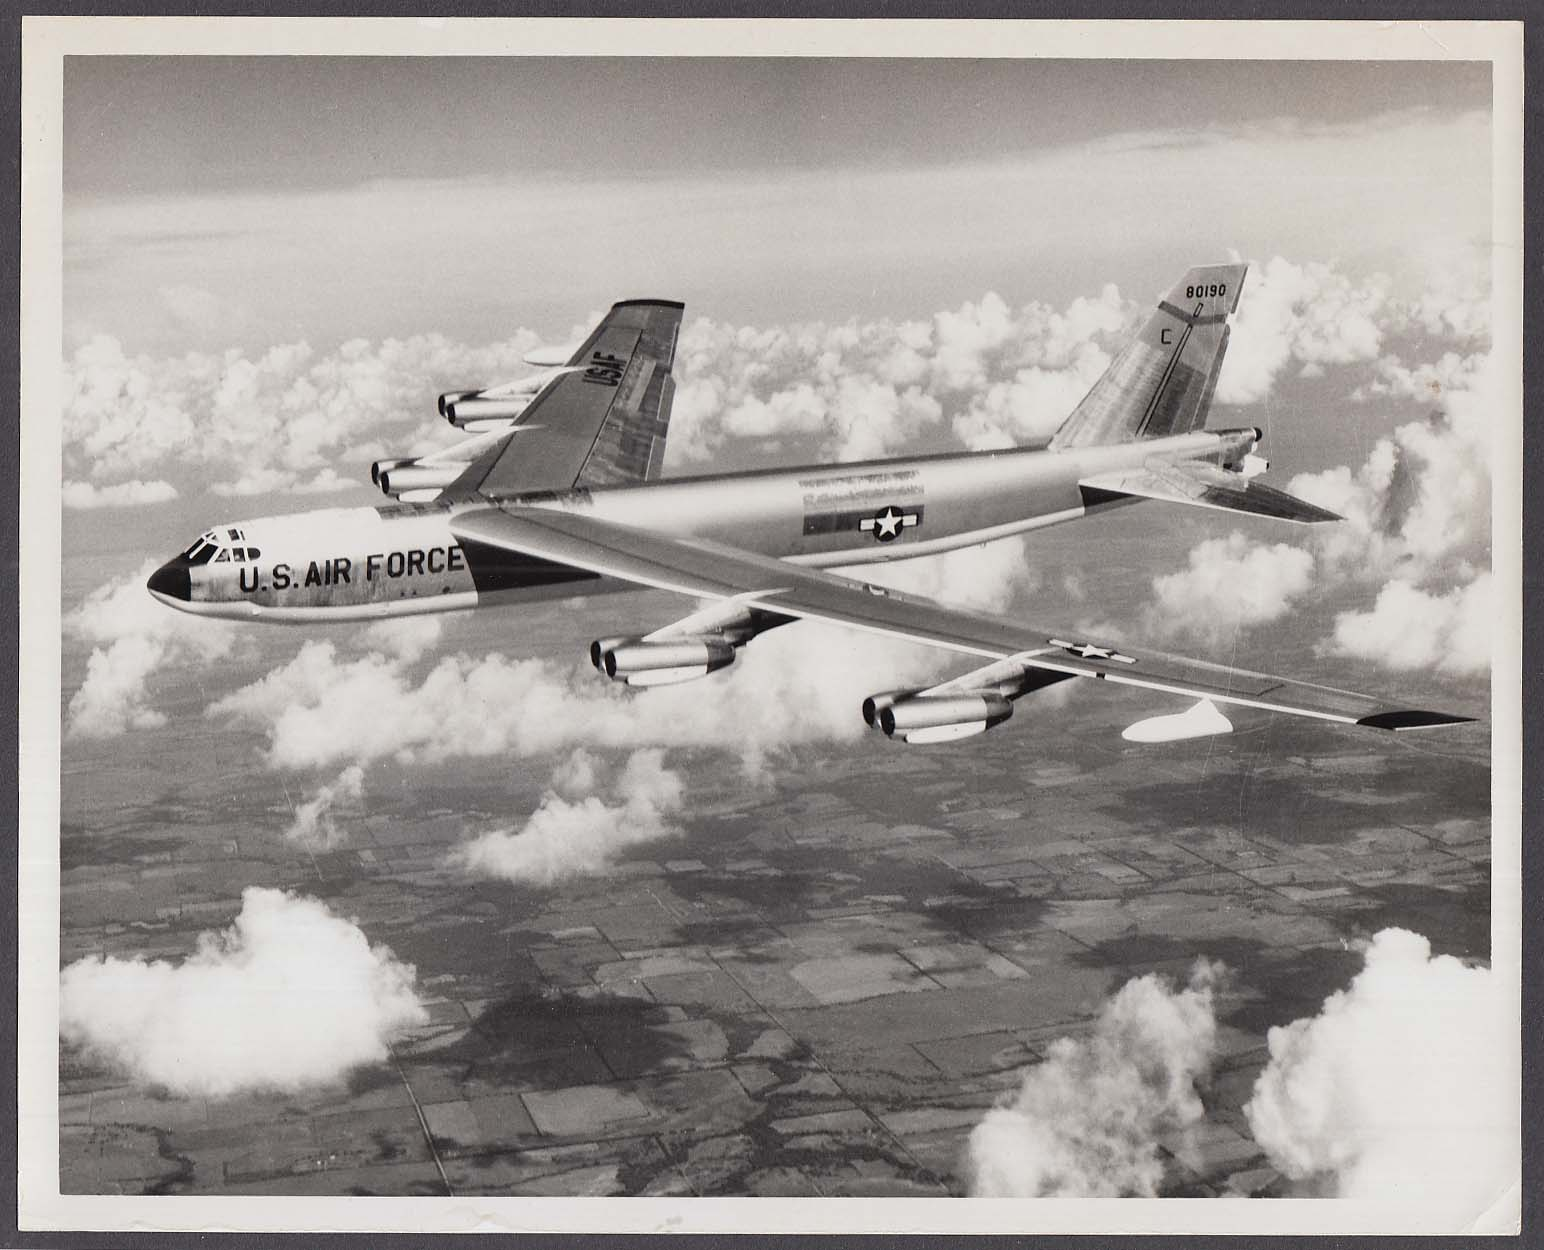 USAF B-52 bomber C 80190 in flight over US 8x10 photo 1971